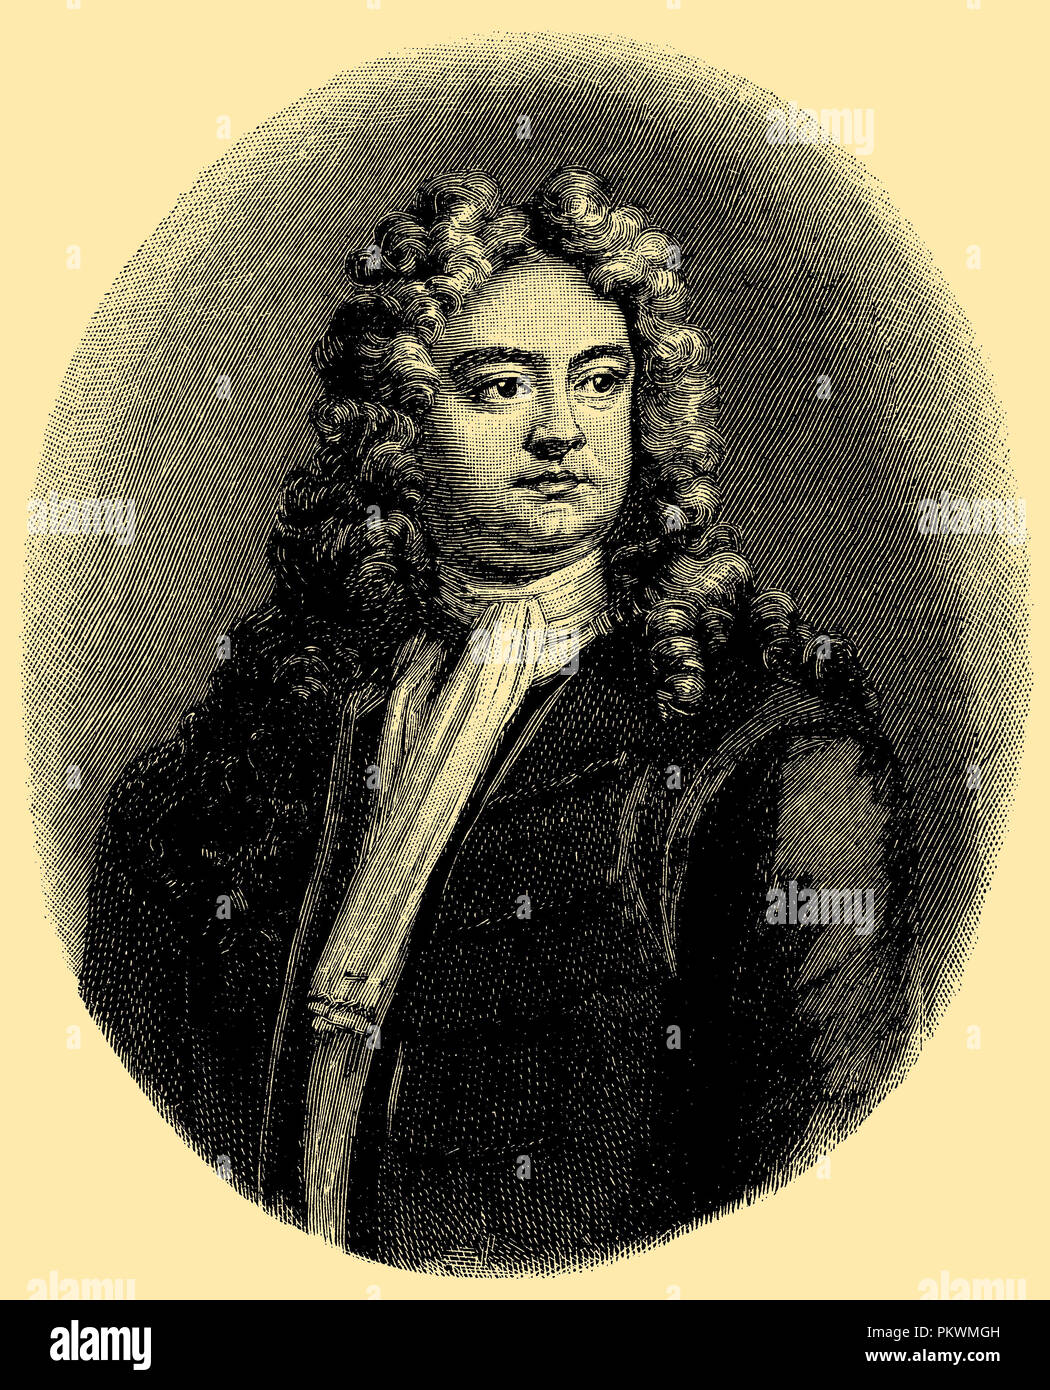 Richard Steele. After the engraving by J. Smith in the British Museum in London, - Stock Image